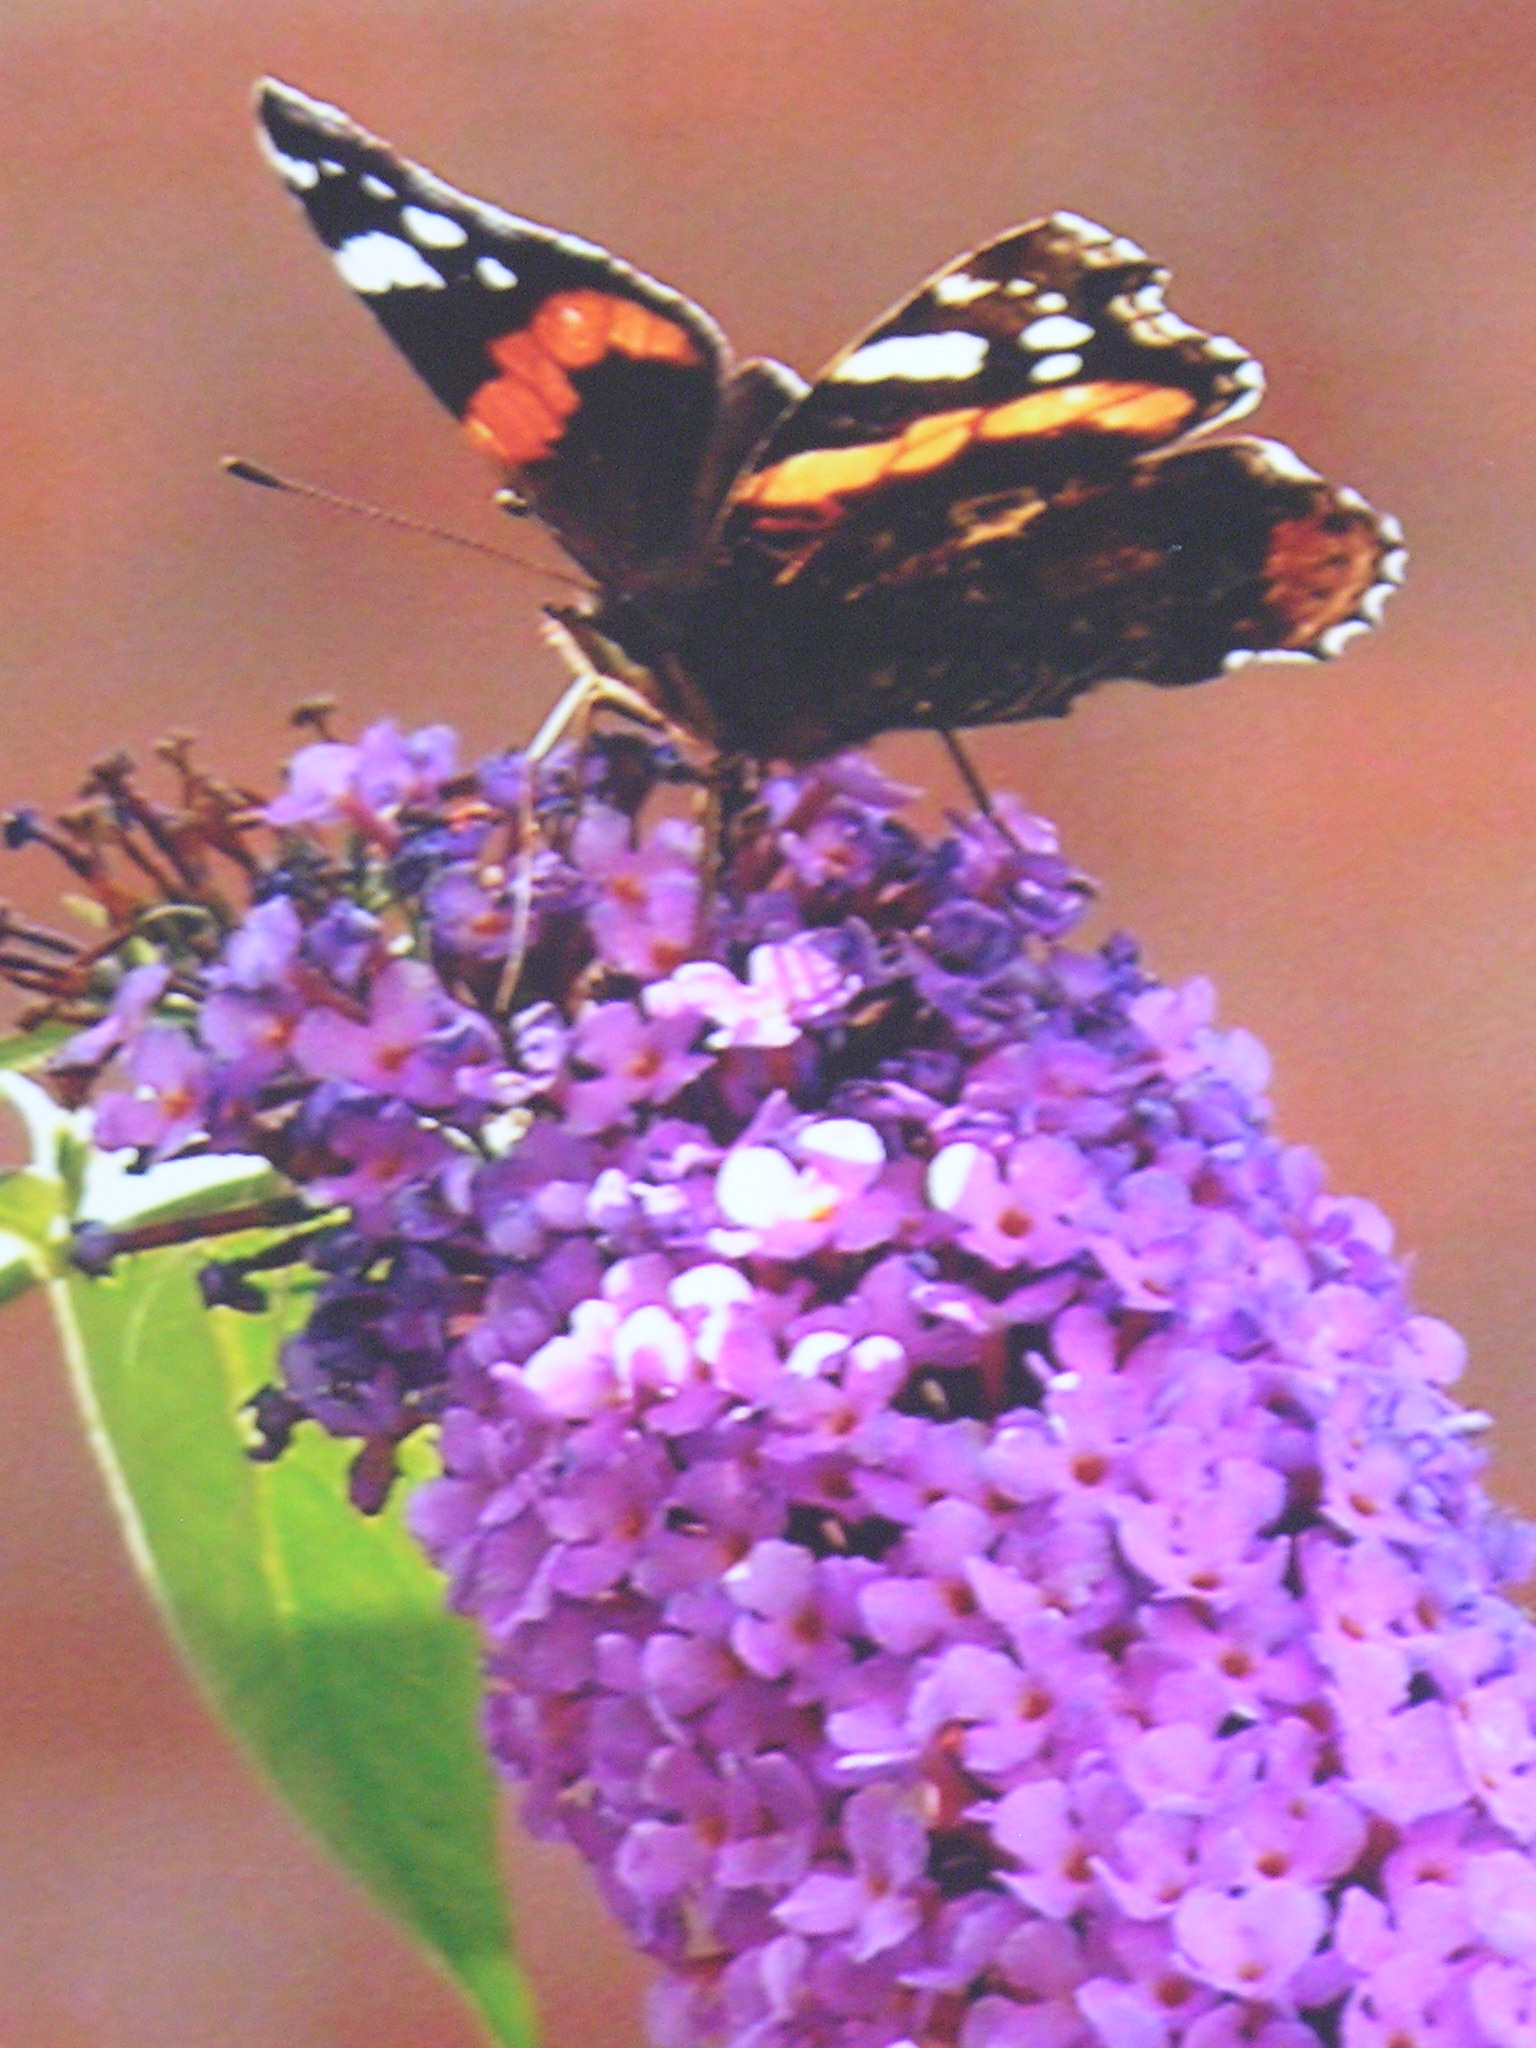 Buddleia is not native to our shores but was an import from China and Russia in the 19th century